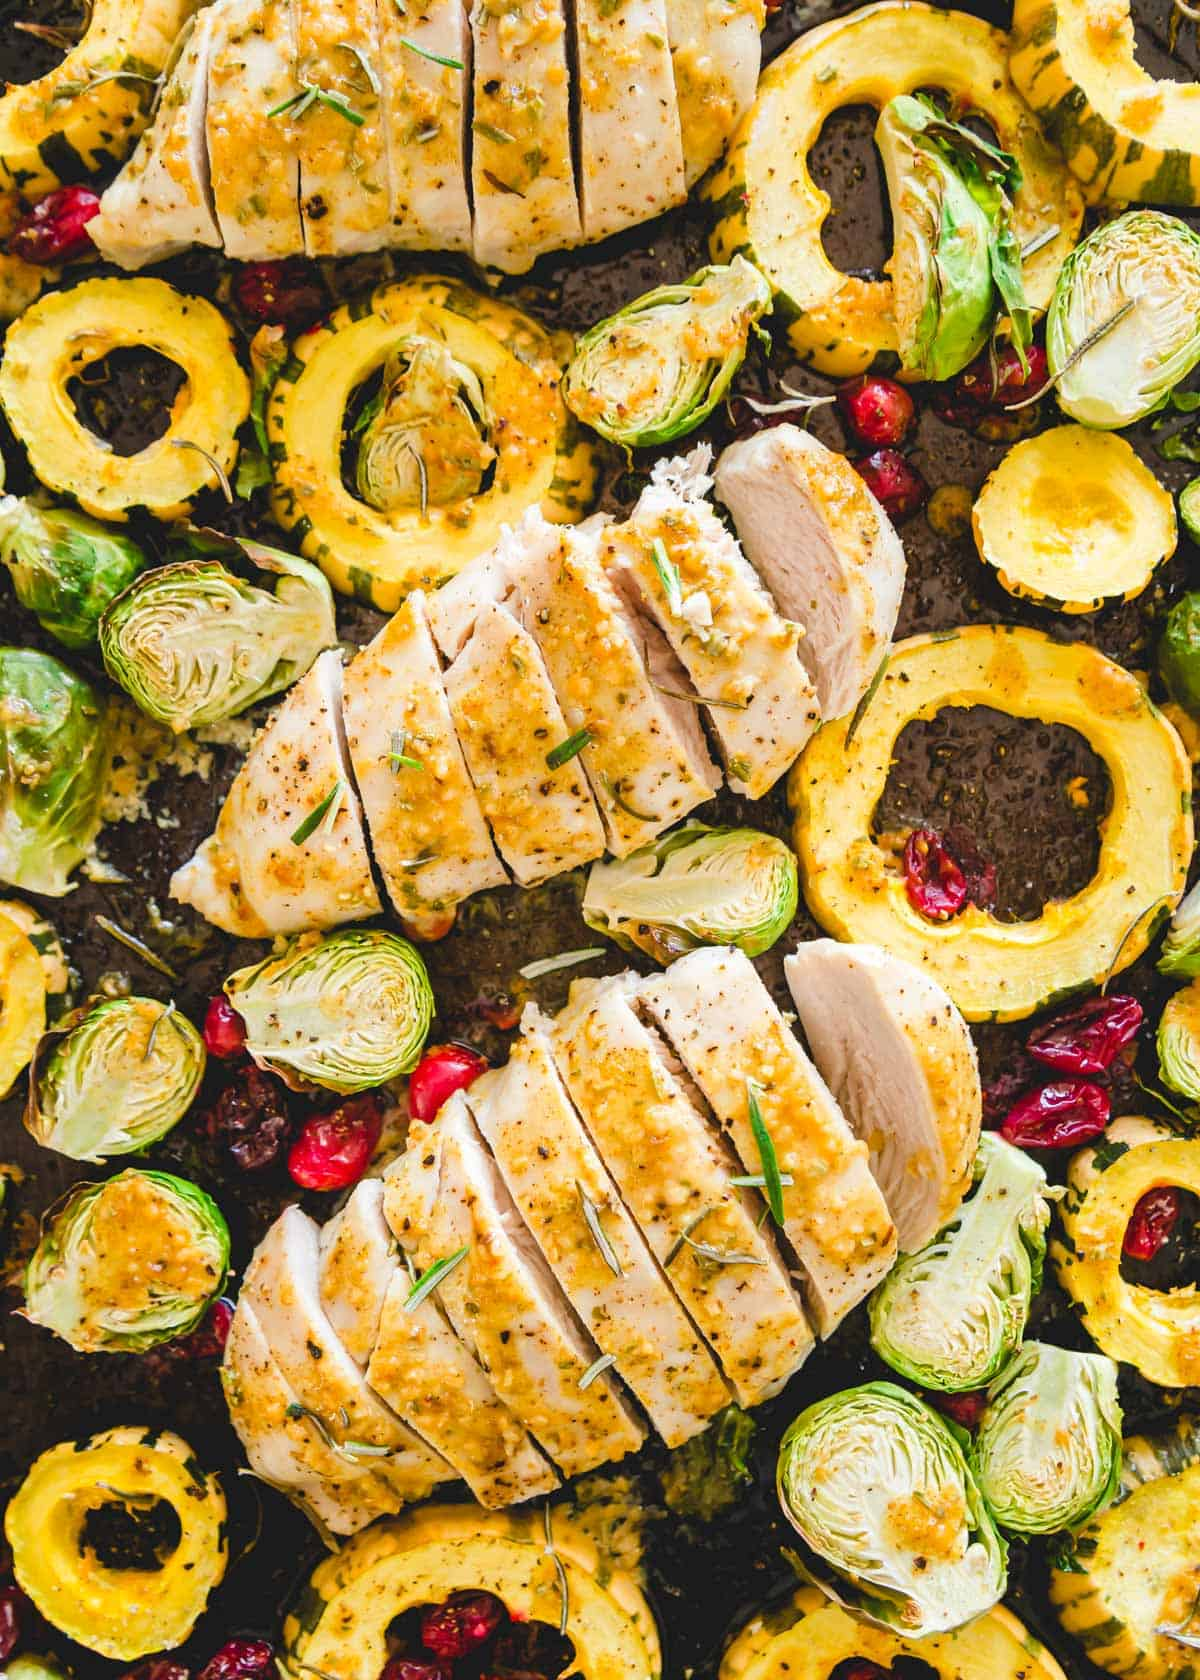 Maple mustard chicken with rosemary and fall vegetables comes together in just 20 minutes on one pan.